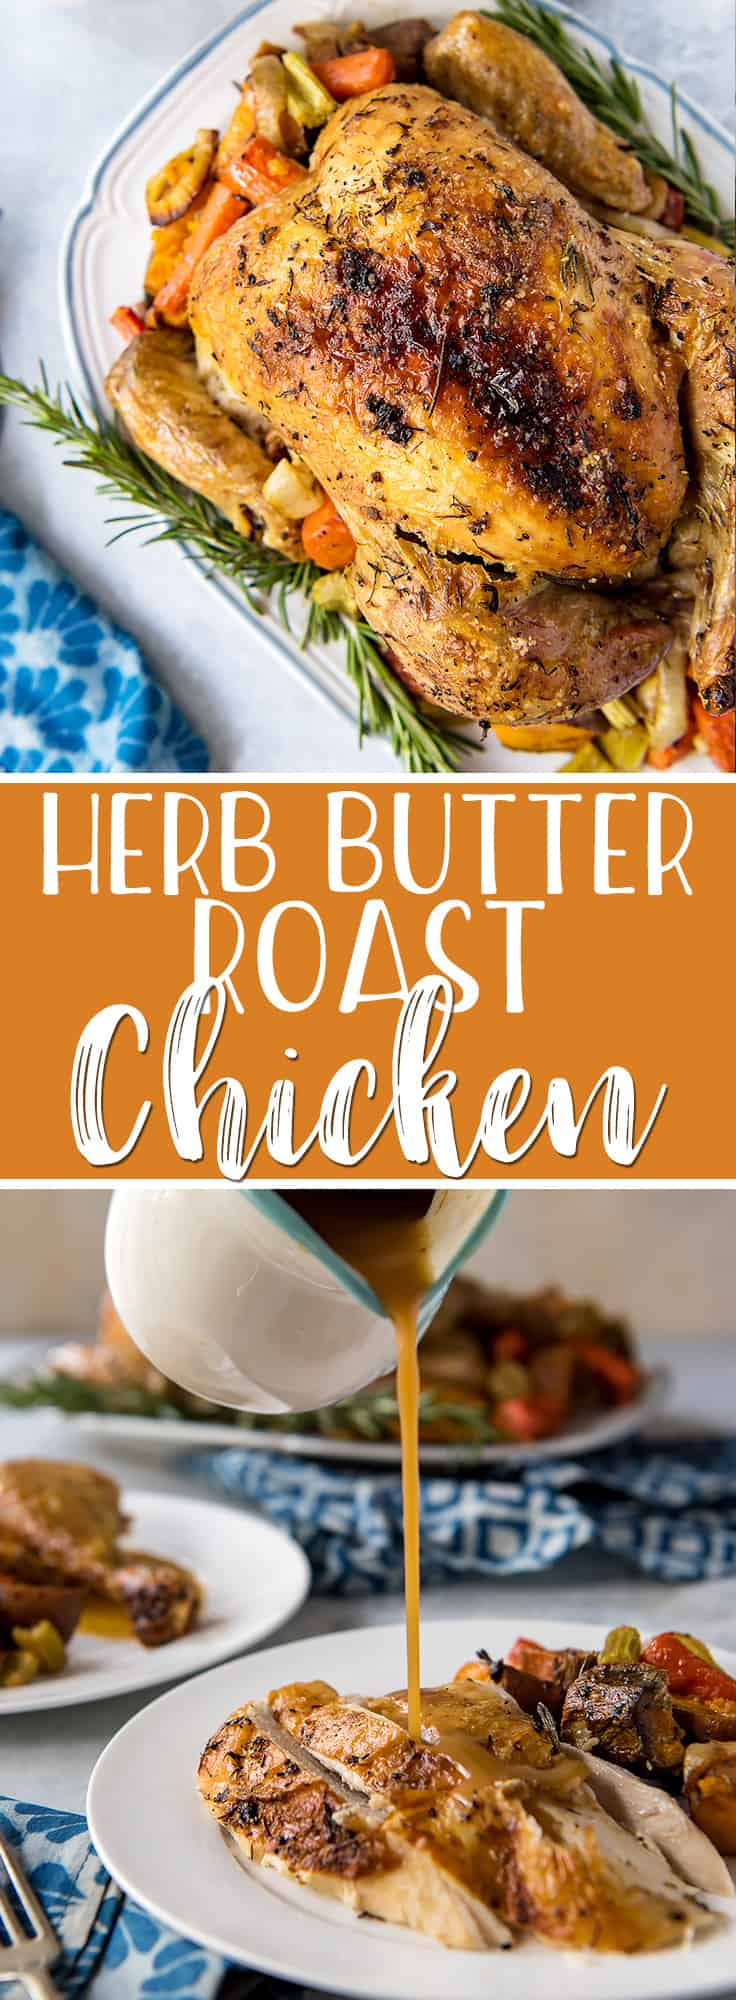 Simple and classic, this may very well be the best oven roasted chicken you've ever had! Stuffed with garlic, lemon, and rosemary, and roasted with root veggies, this heavily seasoned roast chicken recipe has a secret ingredient that keeps the inside juicy, the outsidecrispy, and the pan gravy extra delicious!